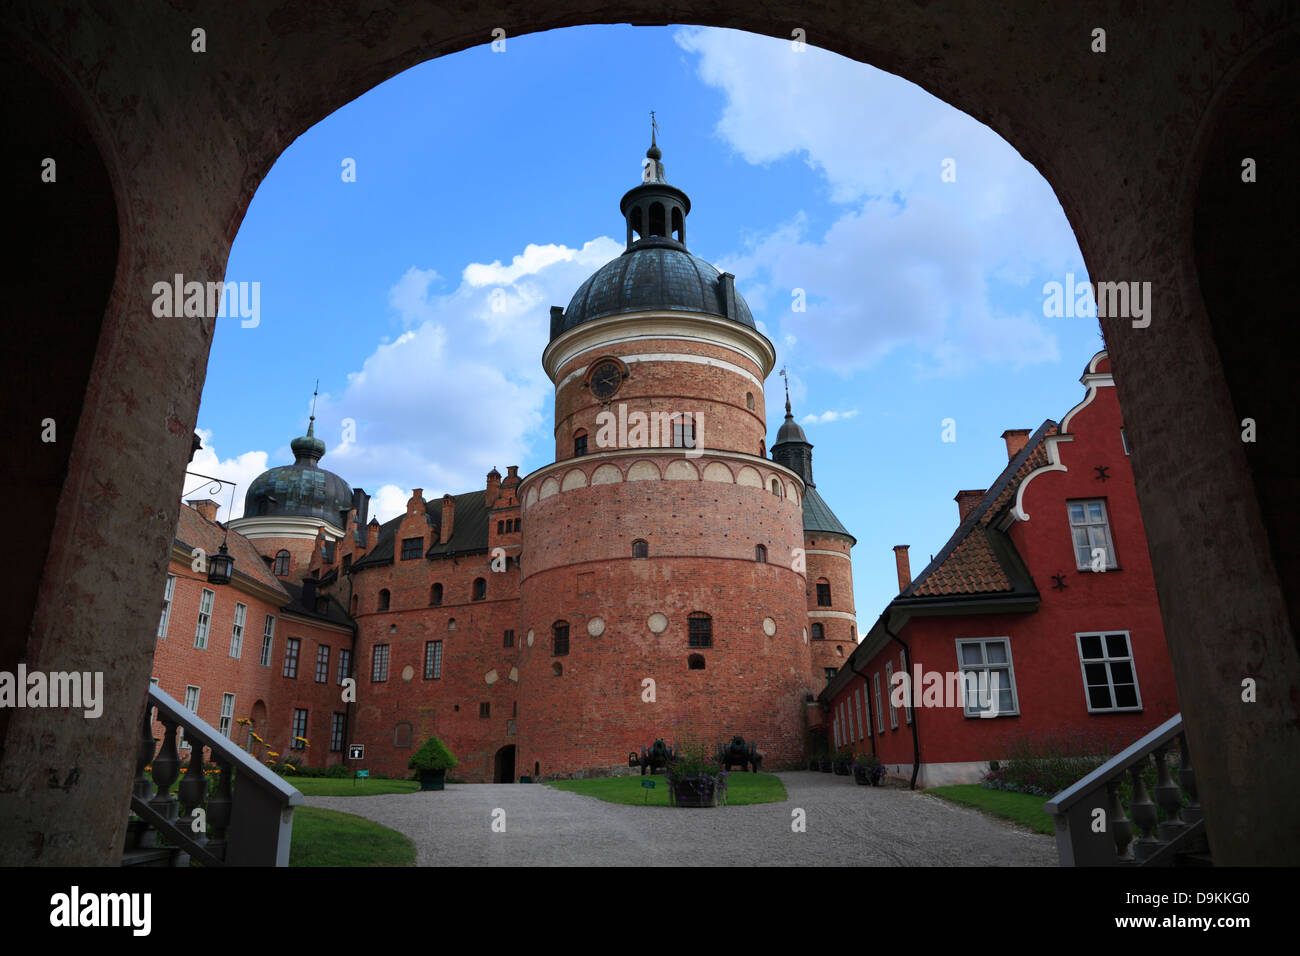 GRIPSHOLM Castle at lake Malaren, inner courtyard, Mariefred, Sodermanland, Sweden, Scandinavia - Stock Image